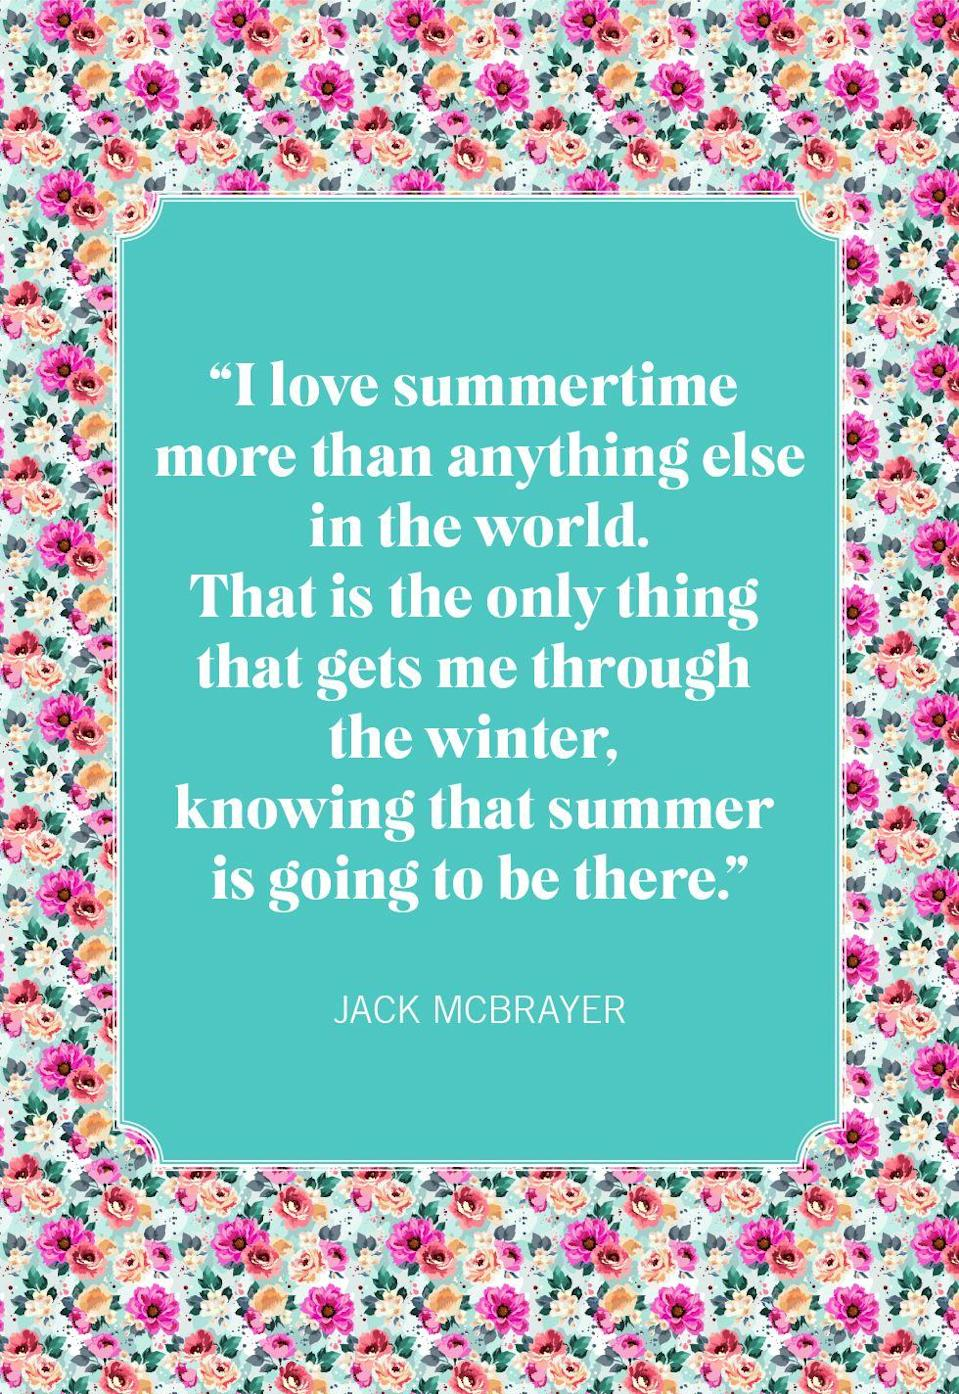 """<p>""""I love summertime more than anything else in the world. That is the only thing that gets me through the winter, knowing that summer is going to be there.""""</p>"""